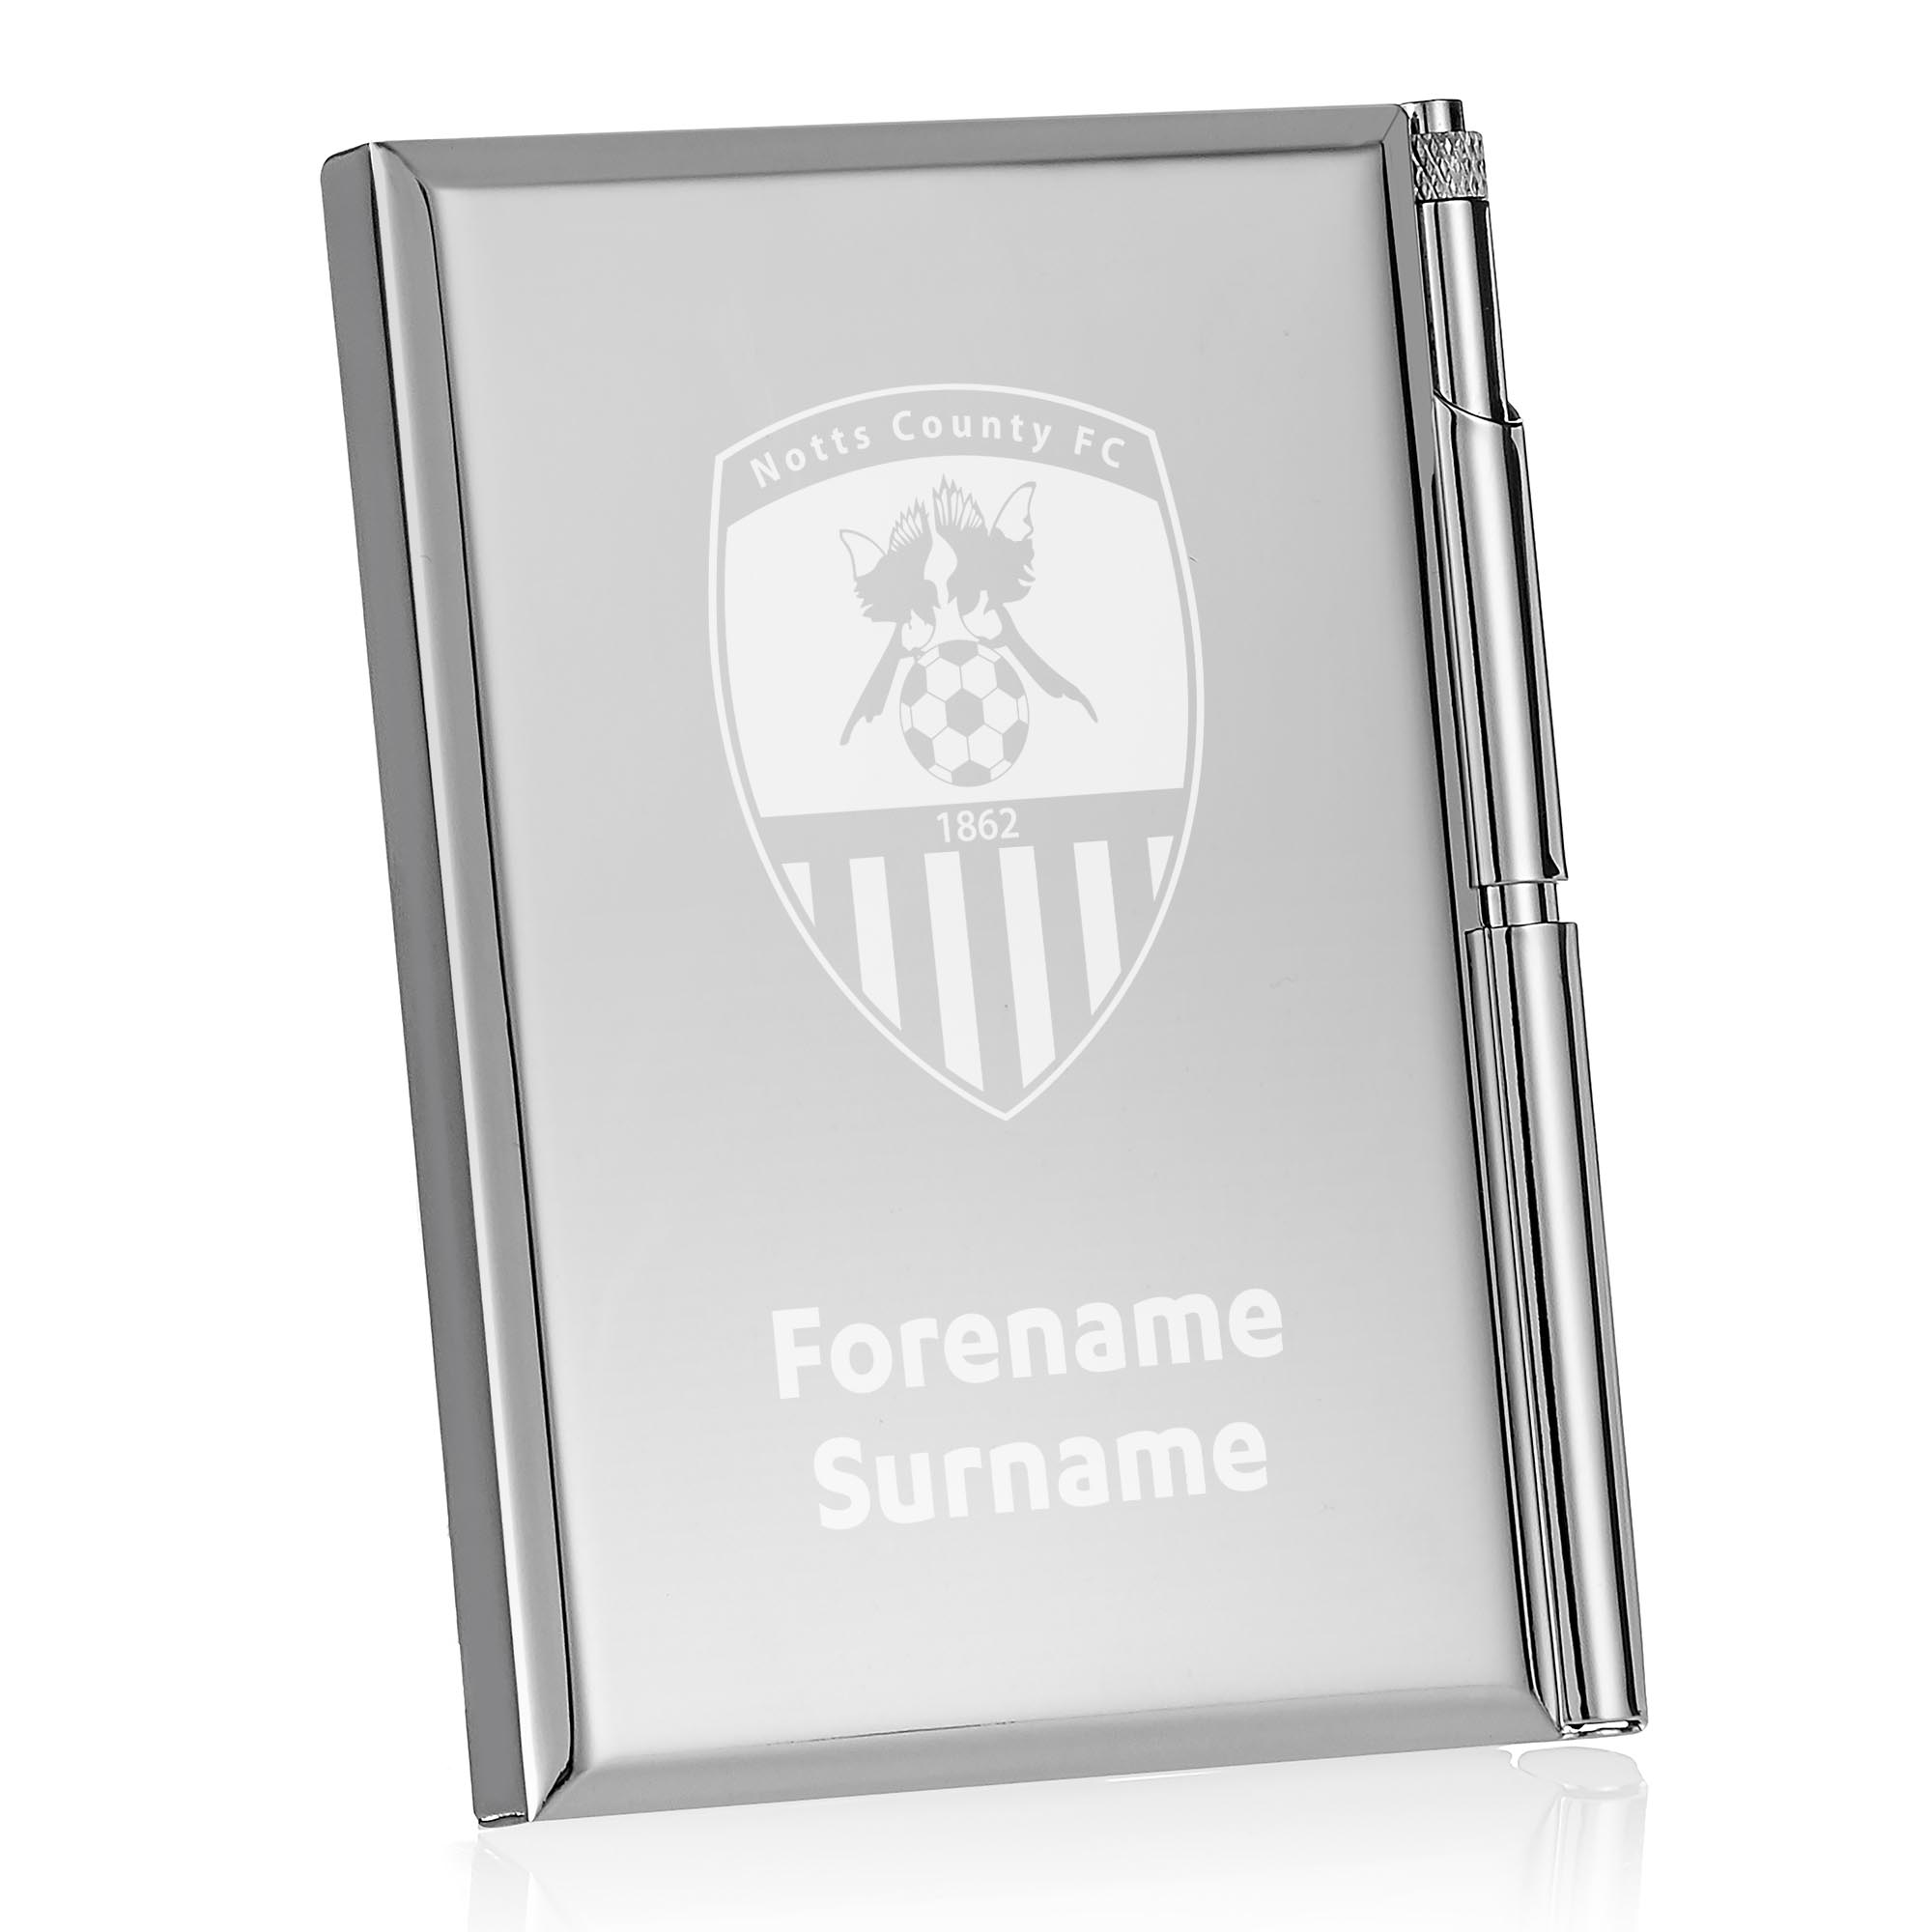 Notts County FC Crest Address Book